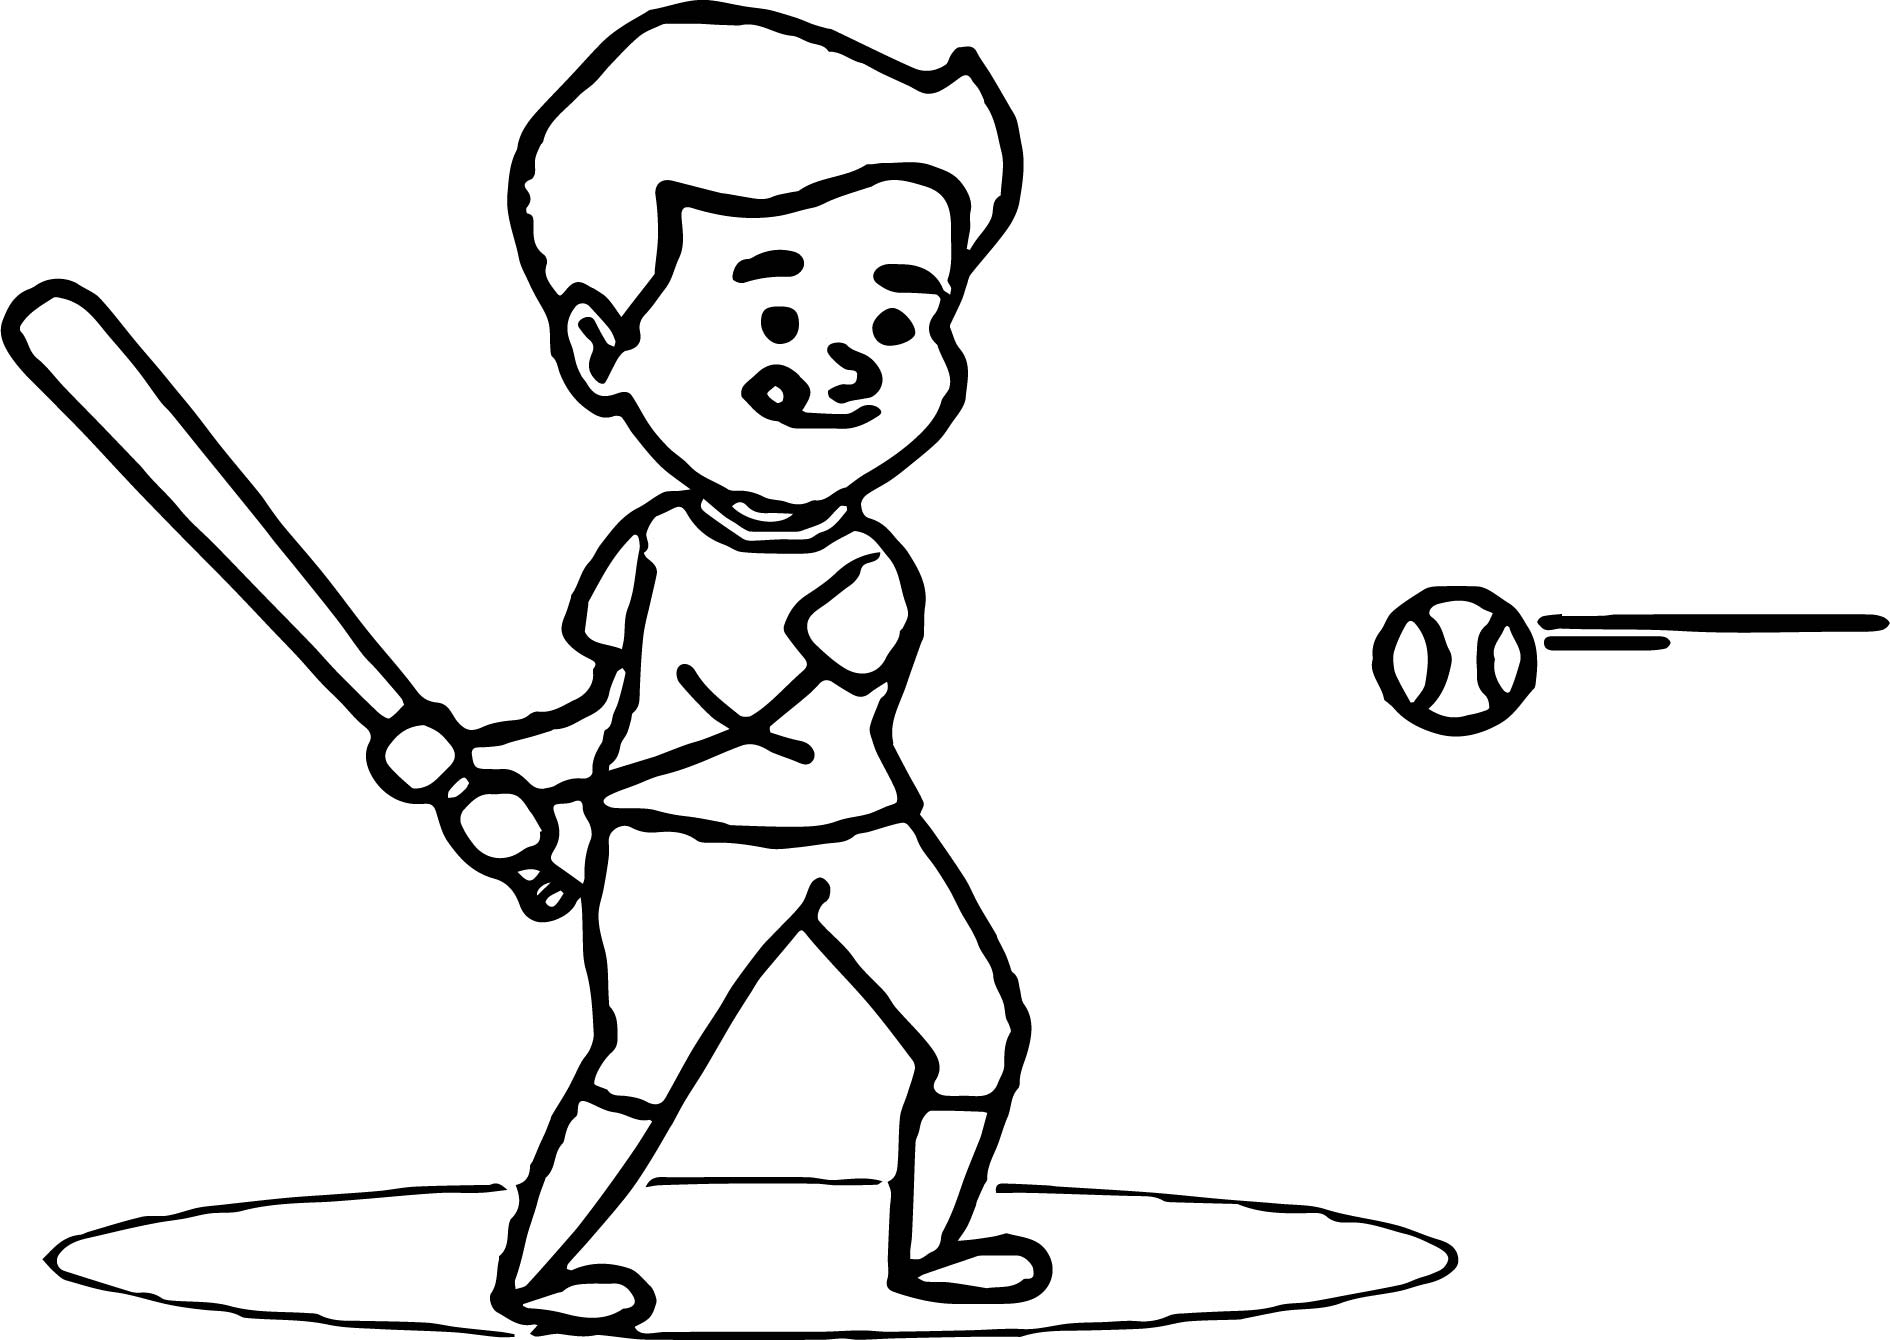 Hockey Player Coloring Pages Coloring Coloring Pages